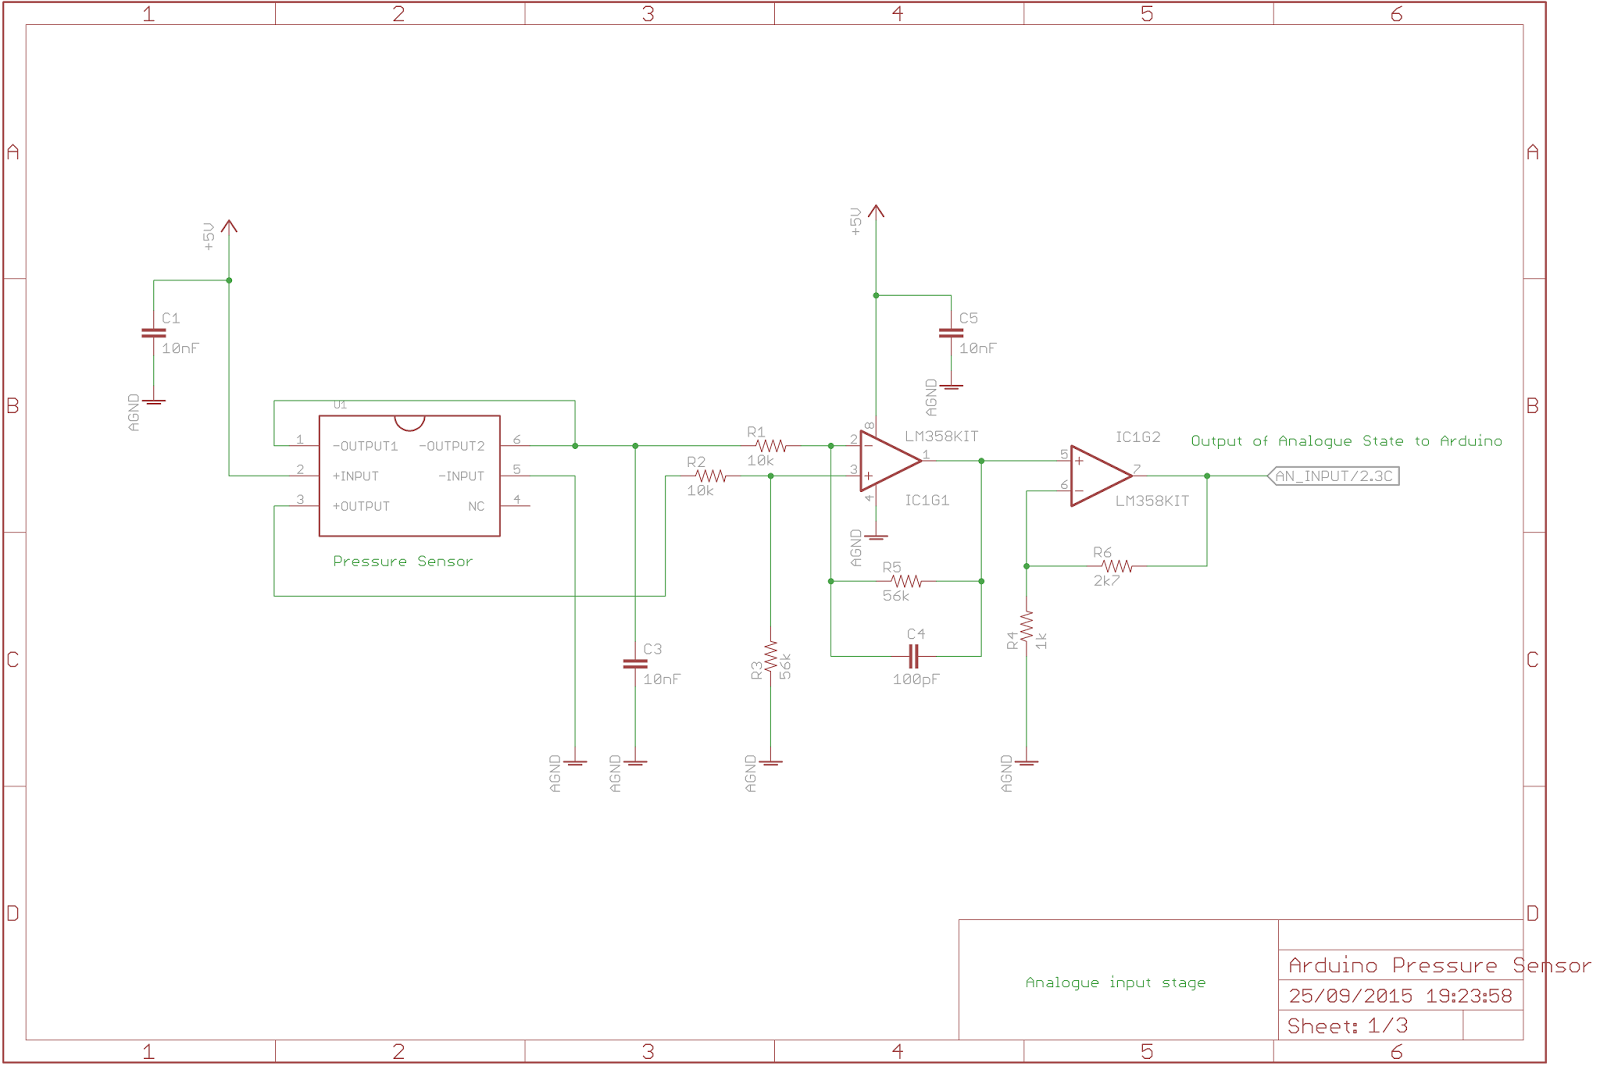 medium resolution of i haven t discussed rs485 before but it is a fairly common serial communications protocol here is the full schematic diagram